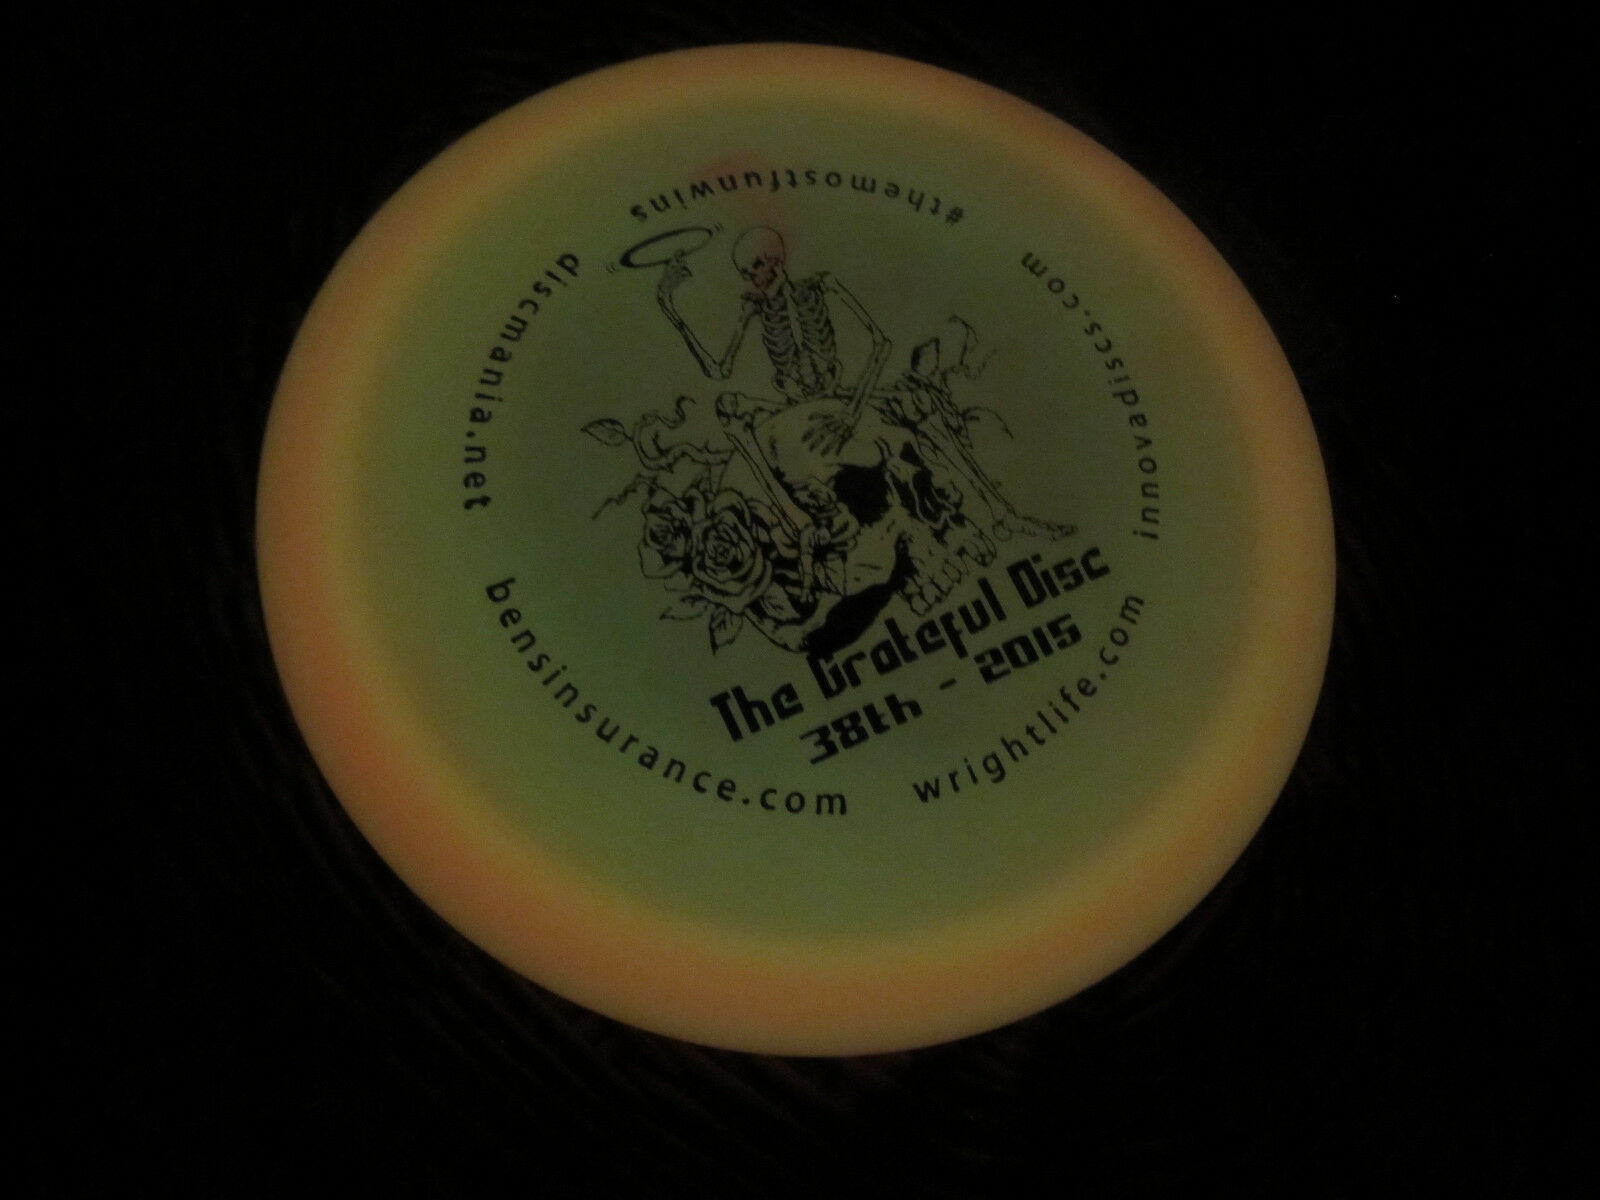 Innova Champion Rosa Glow Thunderbird Thunderbird Thunderbird The Grateful DISC 38th 2015 stamp GOLF 175 7c28e5